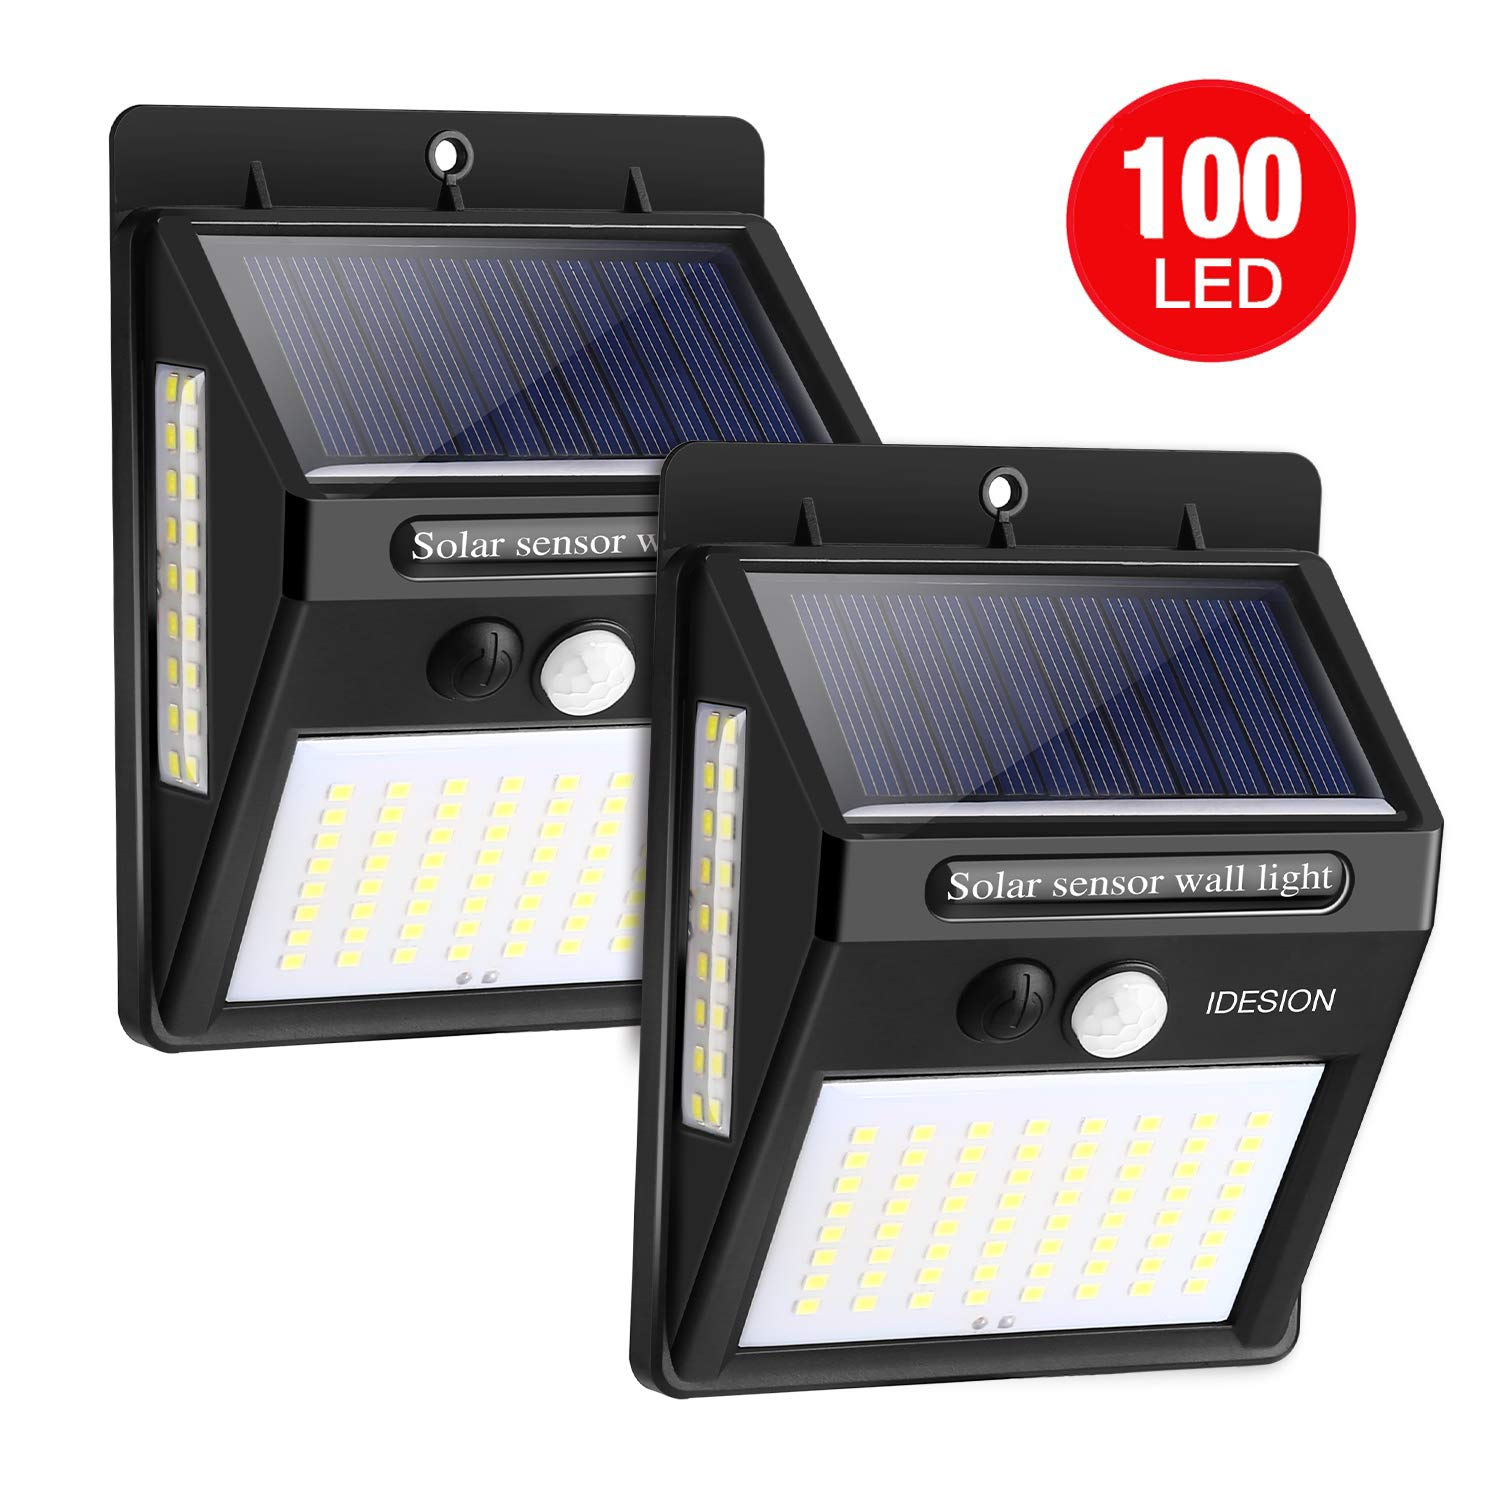 Solar Motion Sensor Light IDESION 100 LED Outdoor 3 Modes 270°Wide Angle Waterproof Solar Powered Security Night Light for Garden Fence Deck Patio Garage Yard 2 Pack by IDESION